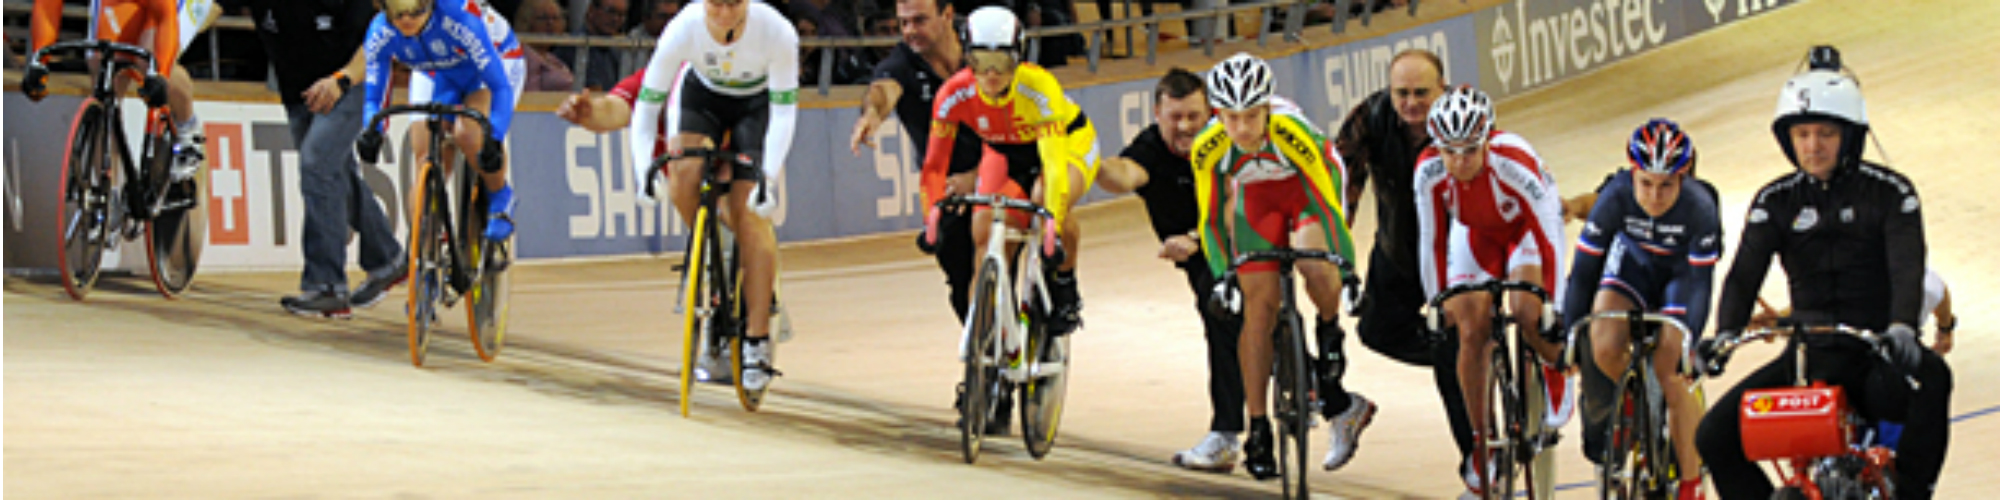 ​When it comes to sports with fast, extreme speeds, most people are probably thinking about things like NASCAR, Formula-One or Rally Car racing. While these are some exciting spectator sports, we feel that in honor of the upcoming 2016 Summer Olympics, we would share some information about one of the fastest, most exhilarating sports from the games, keirin.